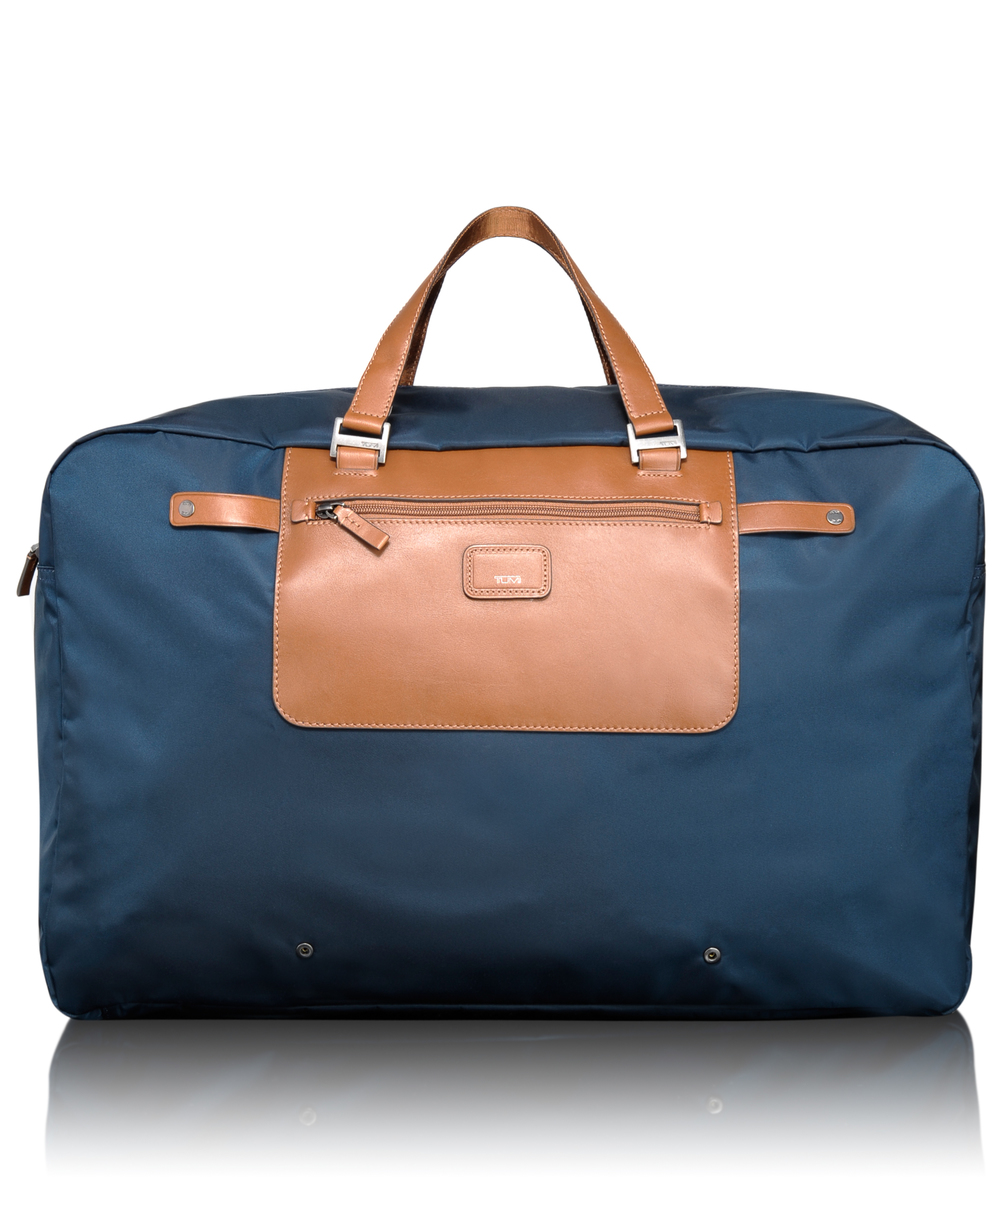 14840 Navy Pack A Way Large Satchel.jpg